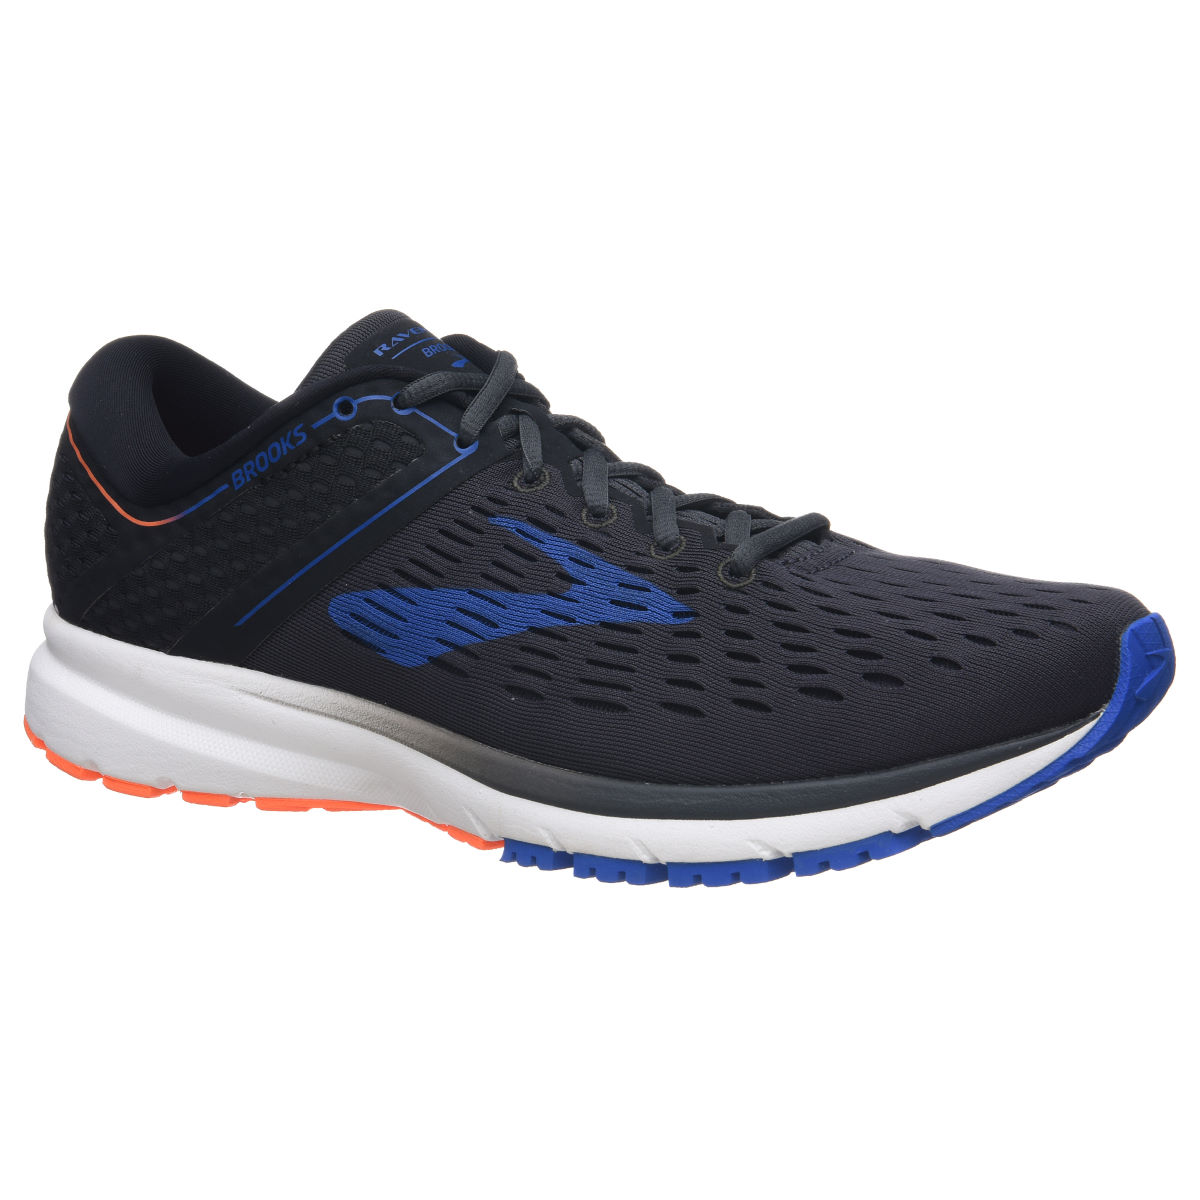 Brooks Ravenna 9 Shoes - Zapatillas/control de movimiento